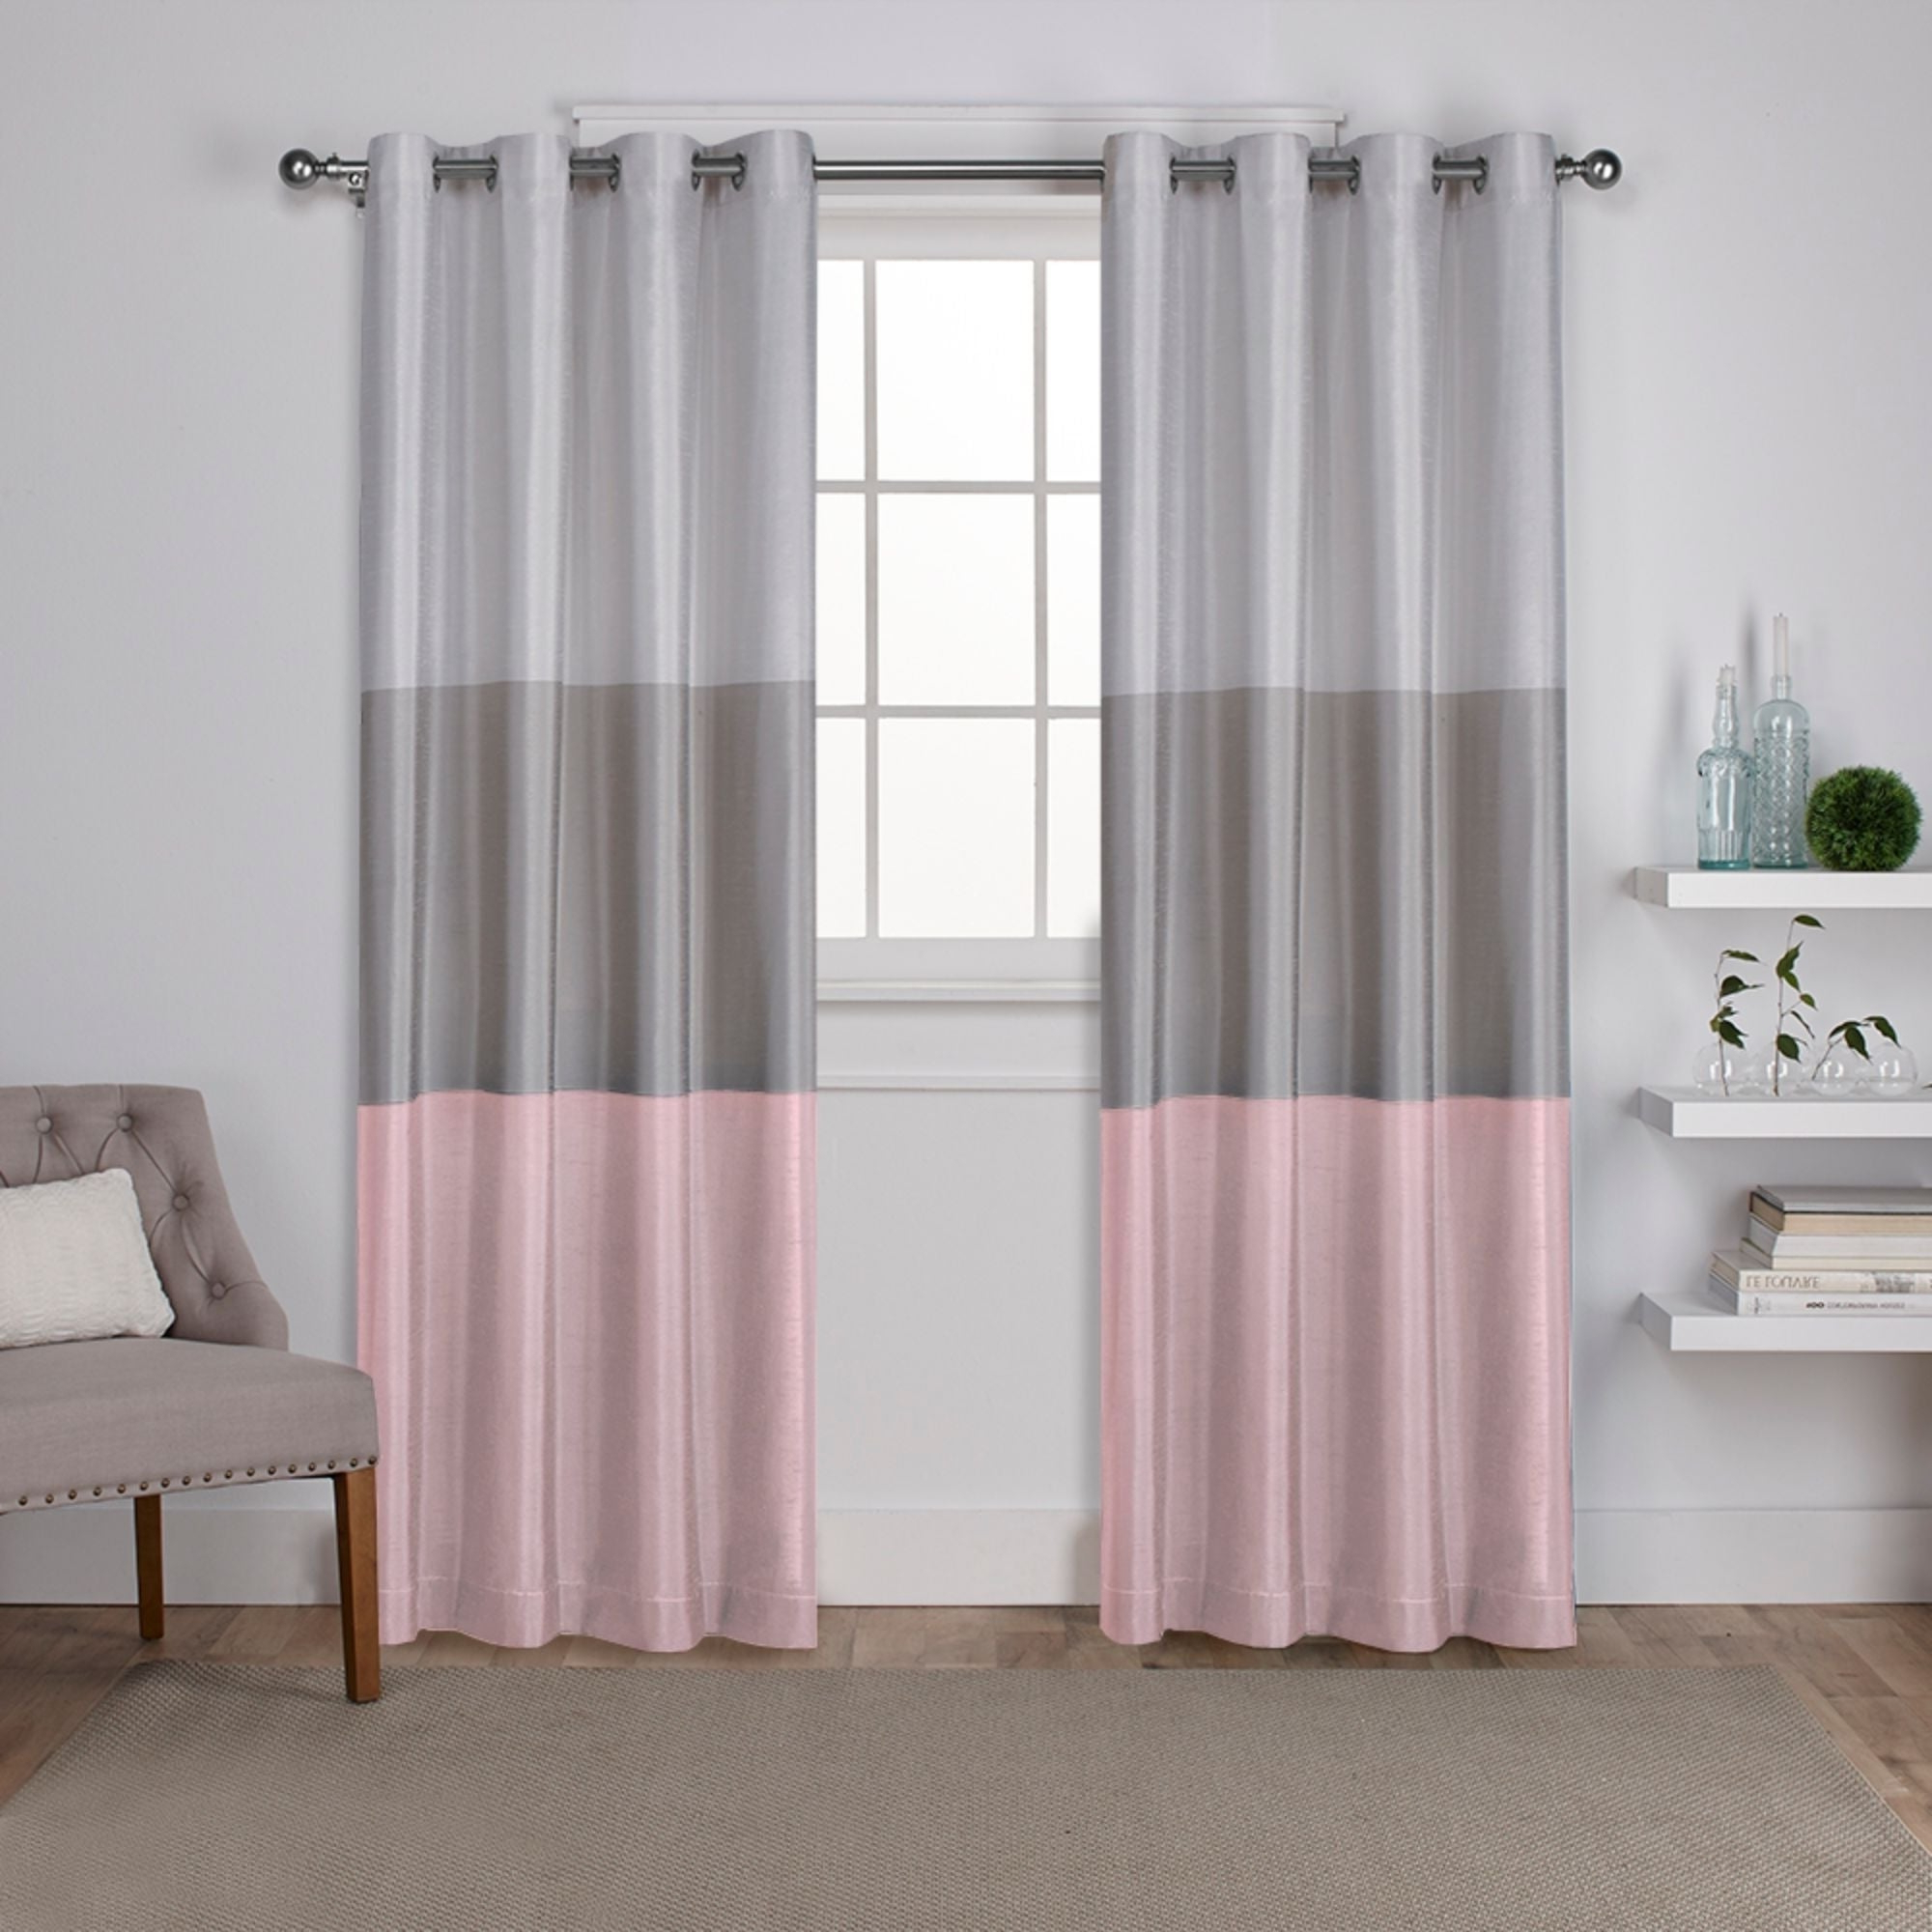 Ocean Striped Window Curtain Panel Pairs With Grommet Top With 2021 Porch & Den Ocean Striped Window Curtain Panel Pair With Grommet Top (View 5 of 20)